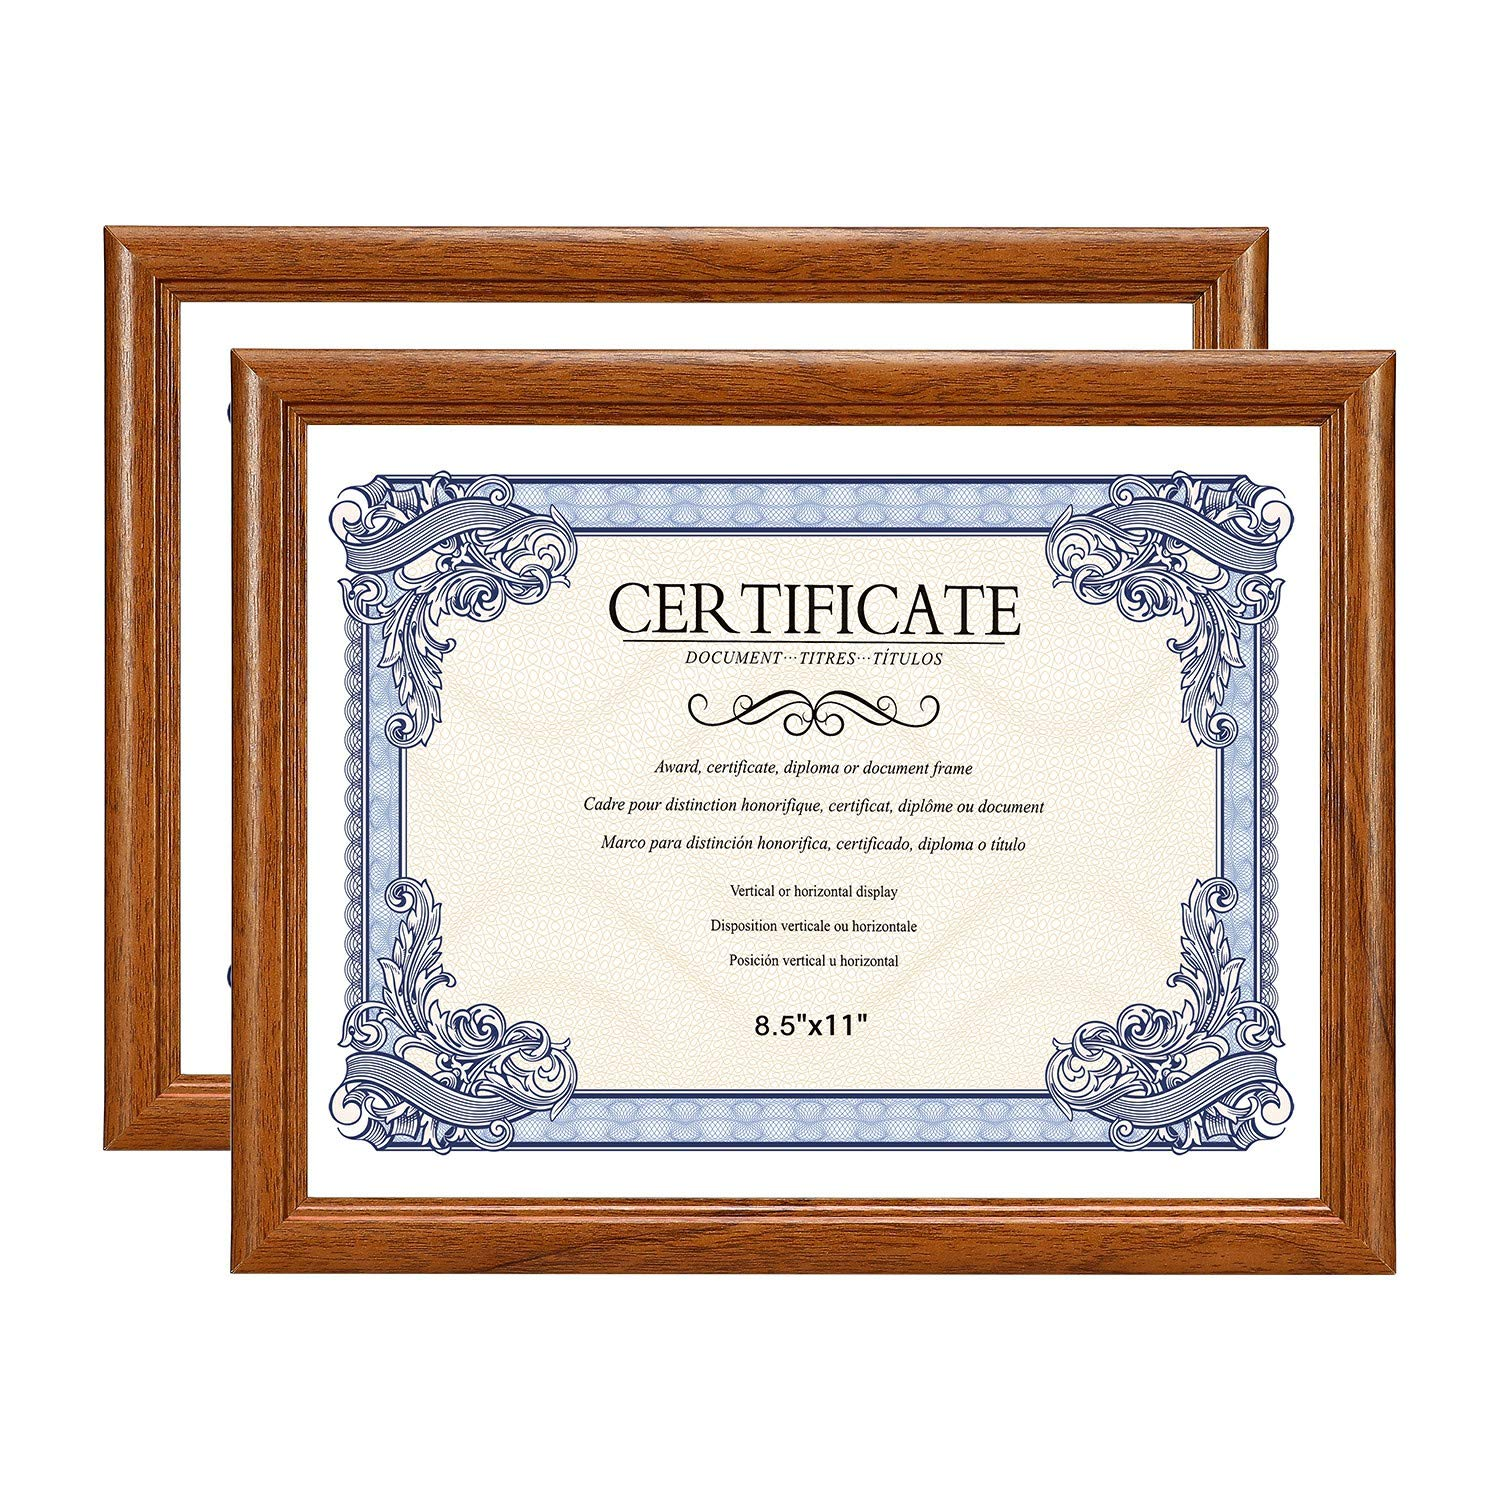 Amistad 8.5X11 Brown Certificate Picture Frame, Document/Diploma Frame with Classic Simple Style, Natural Wood Grain, 2 Pack by Amistad